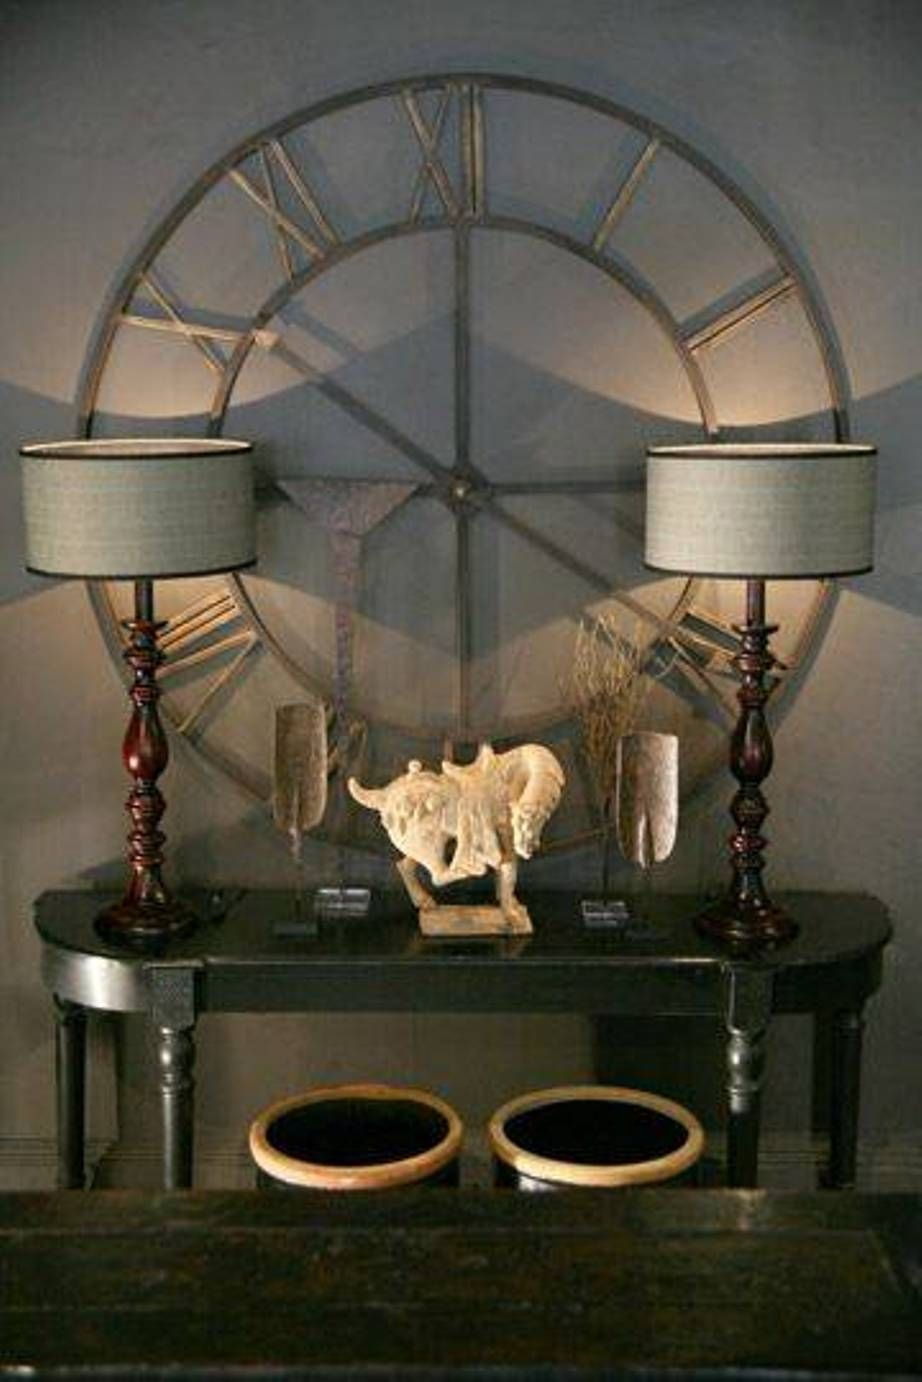 Round Wrought Iron Wall Decor Home Design And Decor  The Elegant Wrought Iron Wall Decor